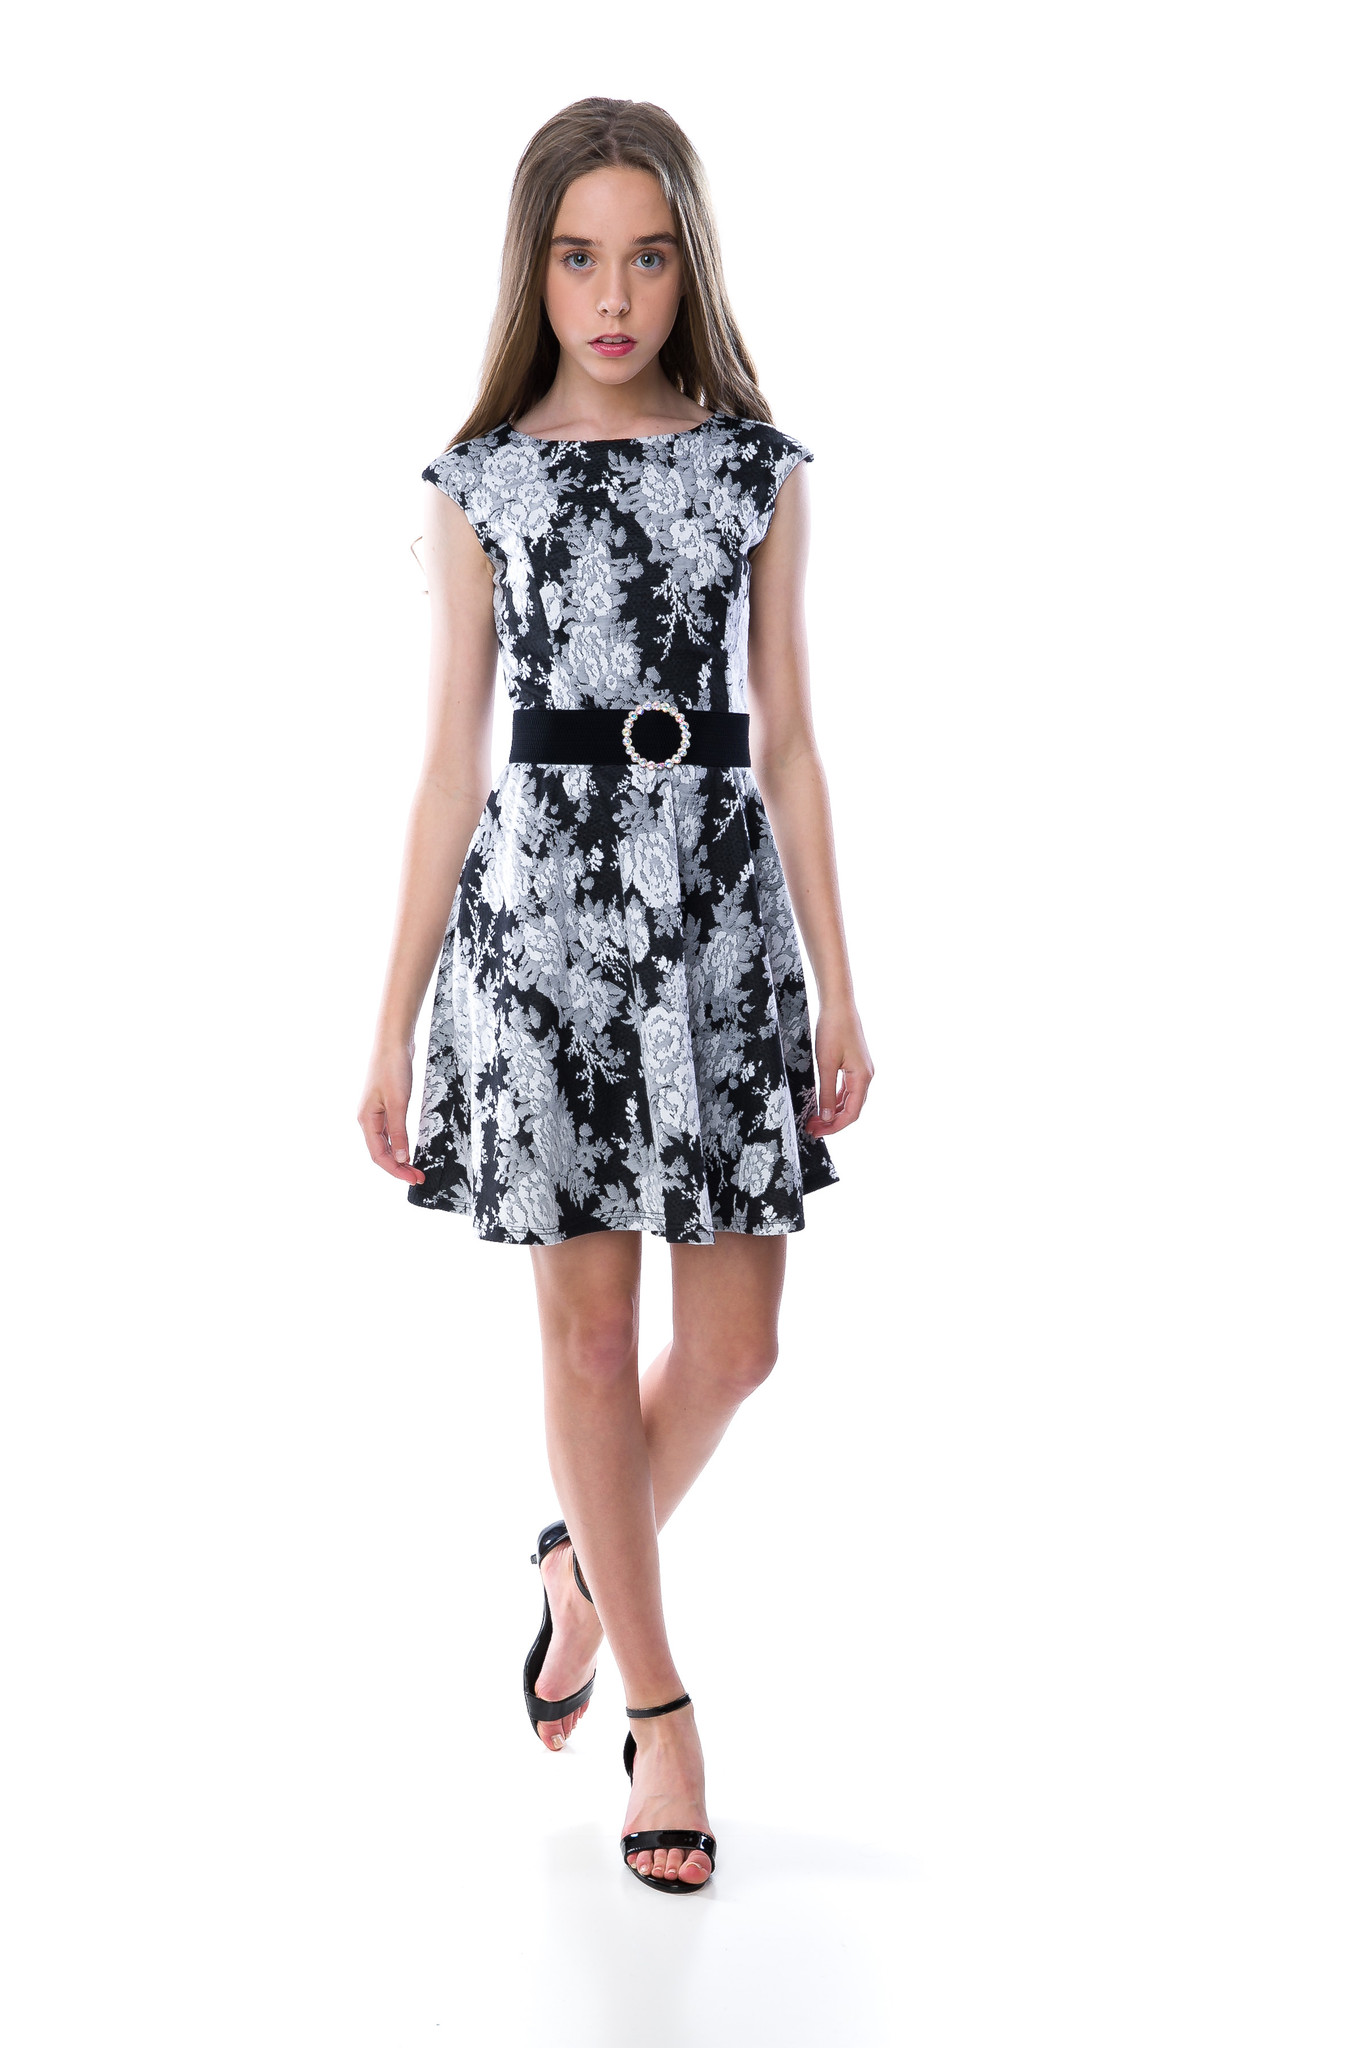 Tween Girls Black and White Floral Cap Sleeve Dress with belt.